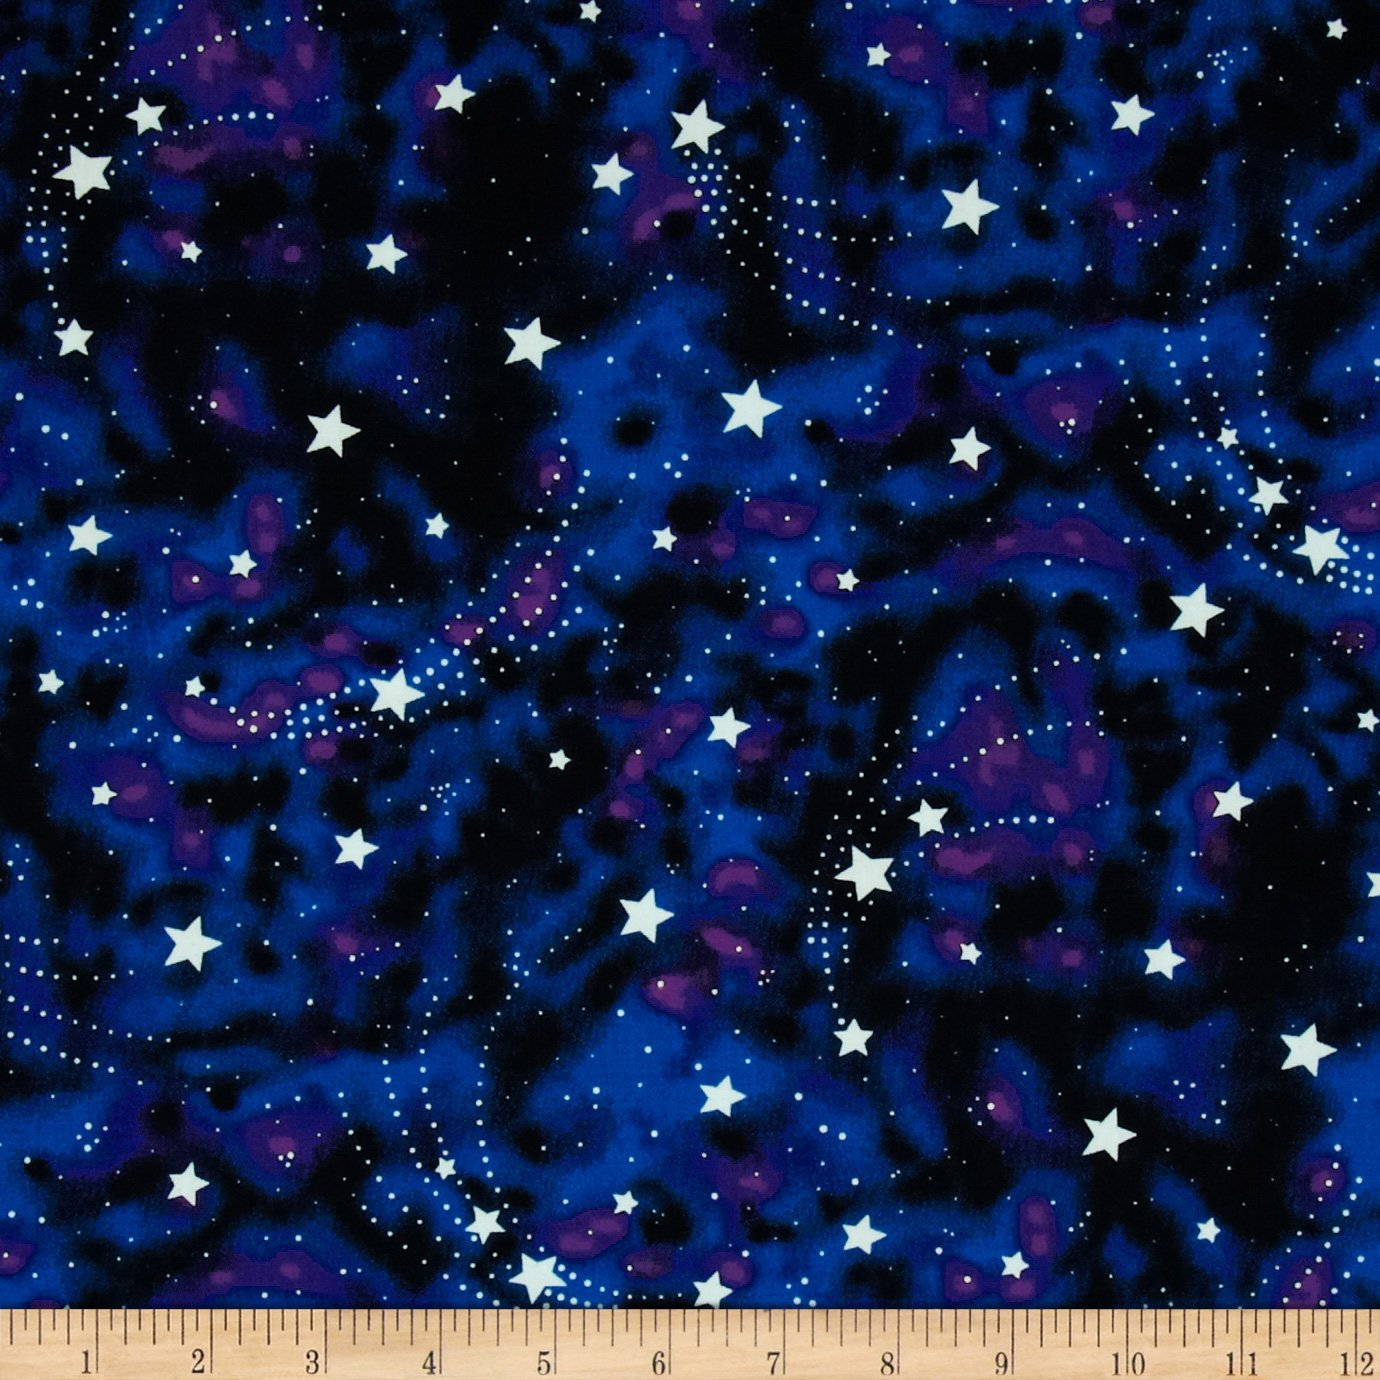 Michael Miller Star Magic Glow in The Dark Fabric by The Yard, Nite 0355635